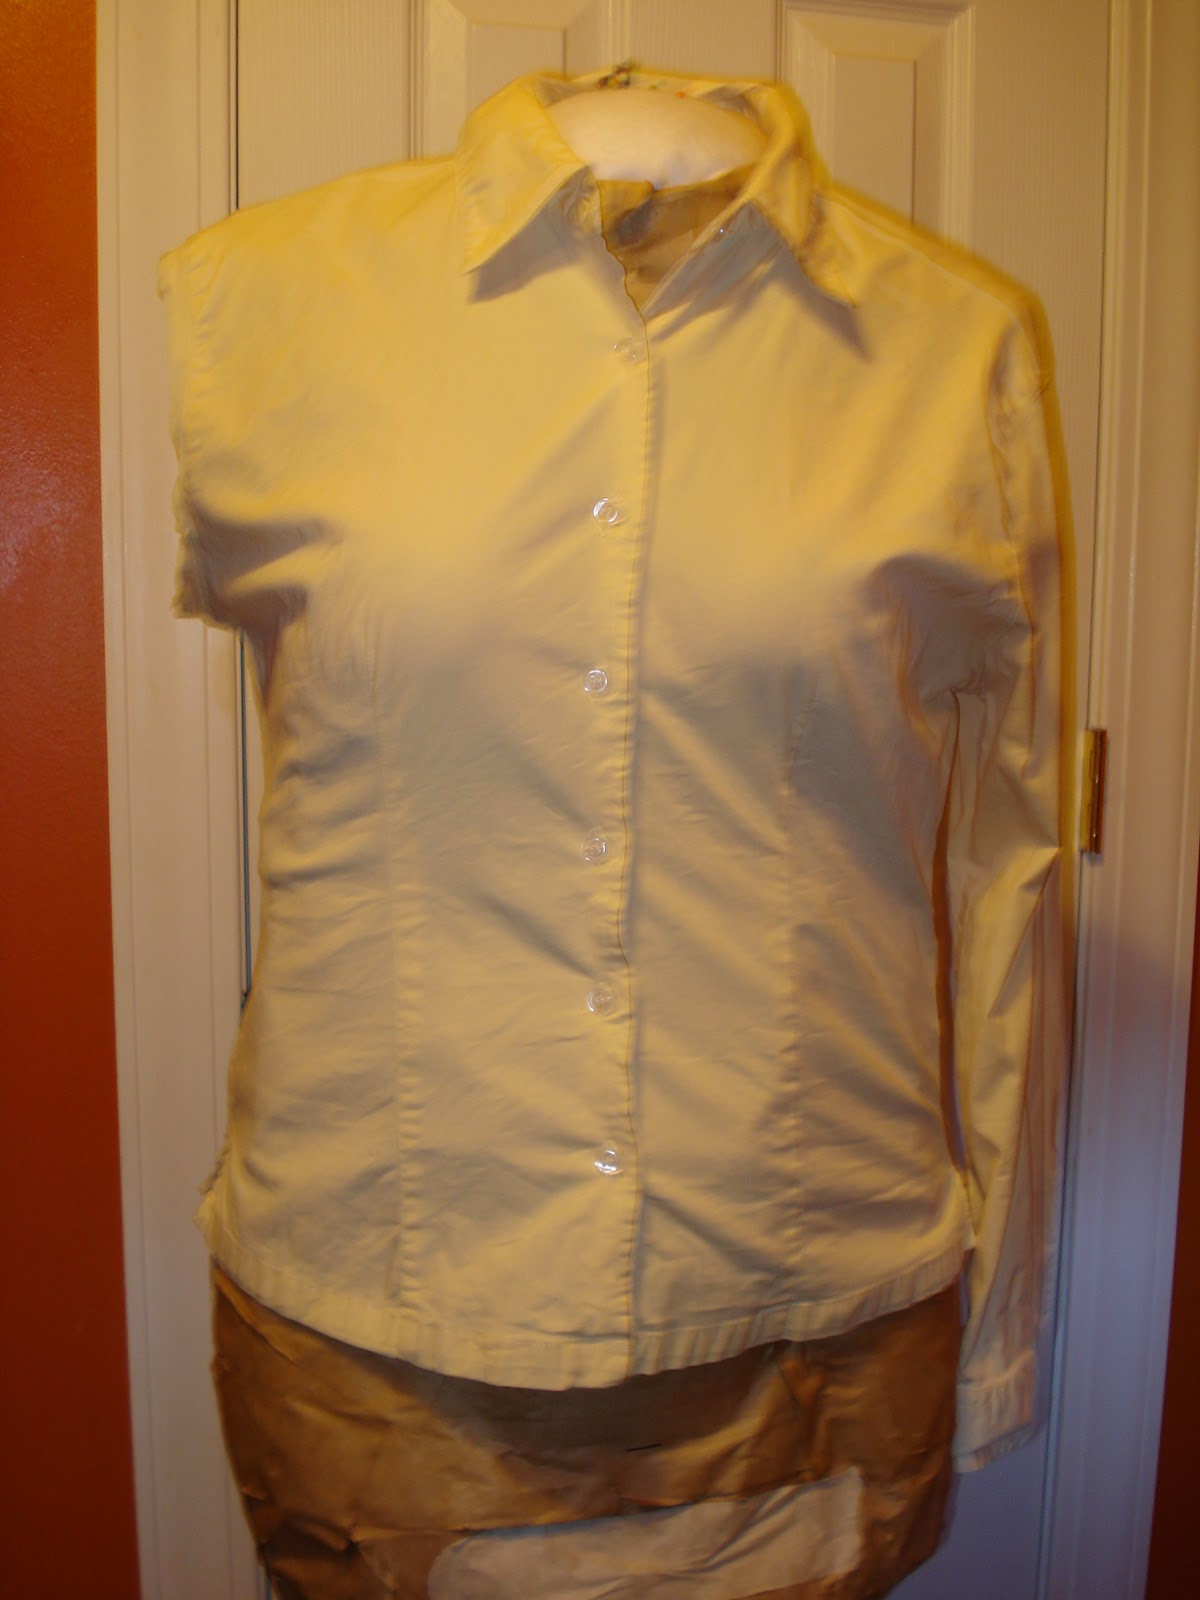 how to get yellow stain off shirt